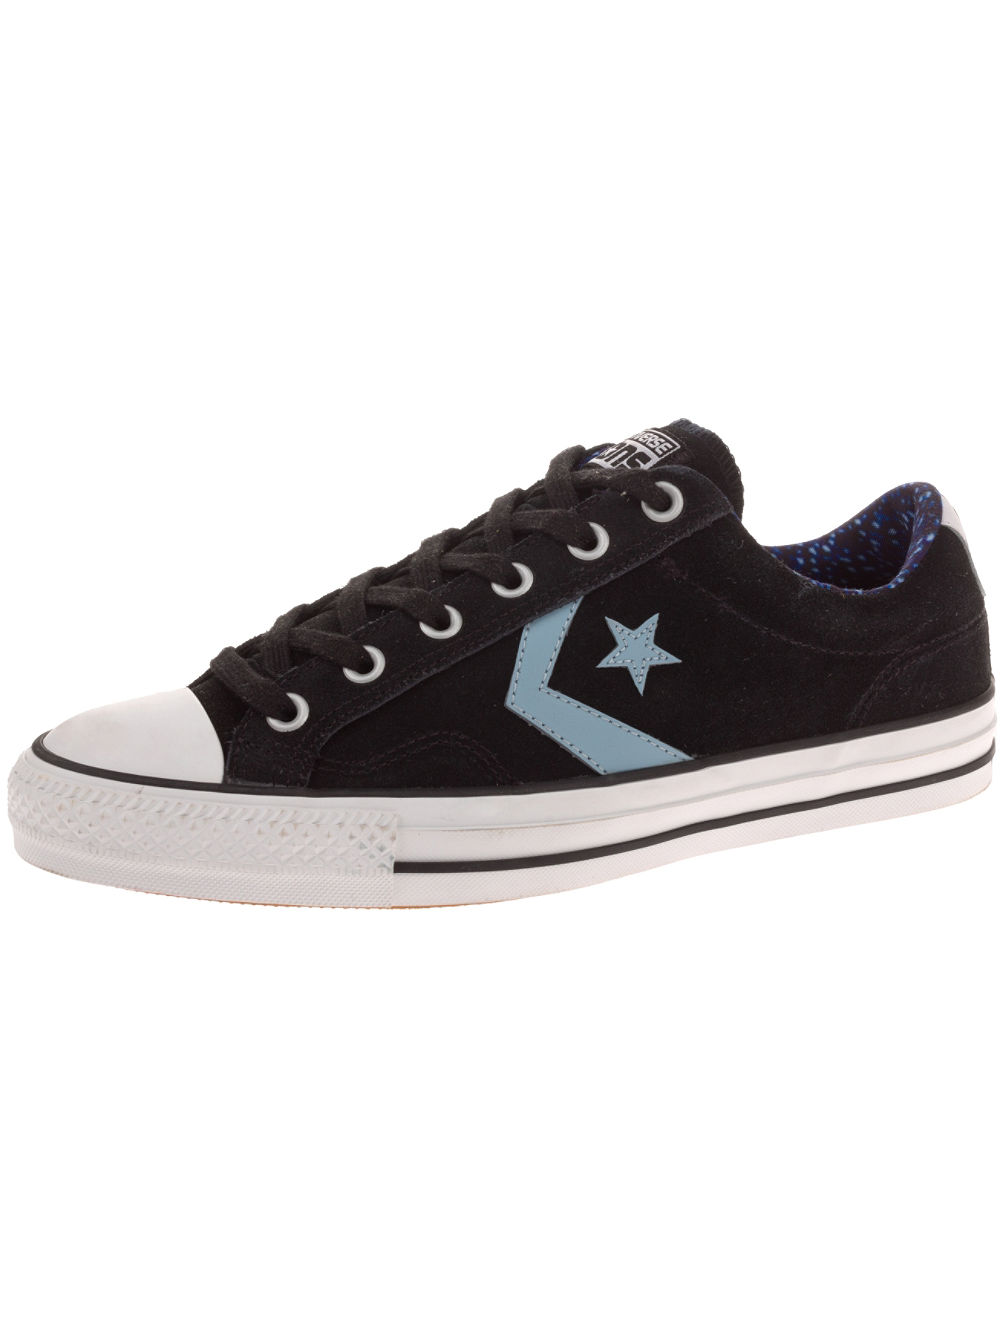 Converse CONS Star Player Pro Skate Shoes - converse - blue-tomato.com